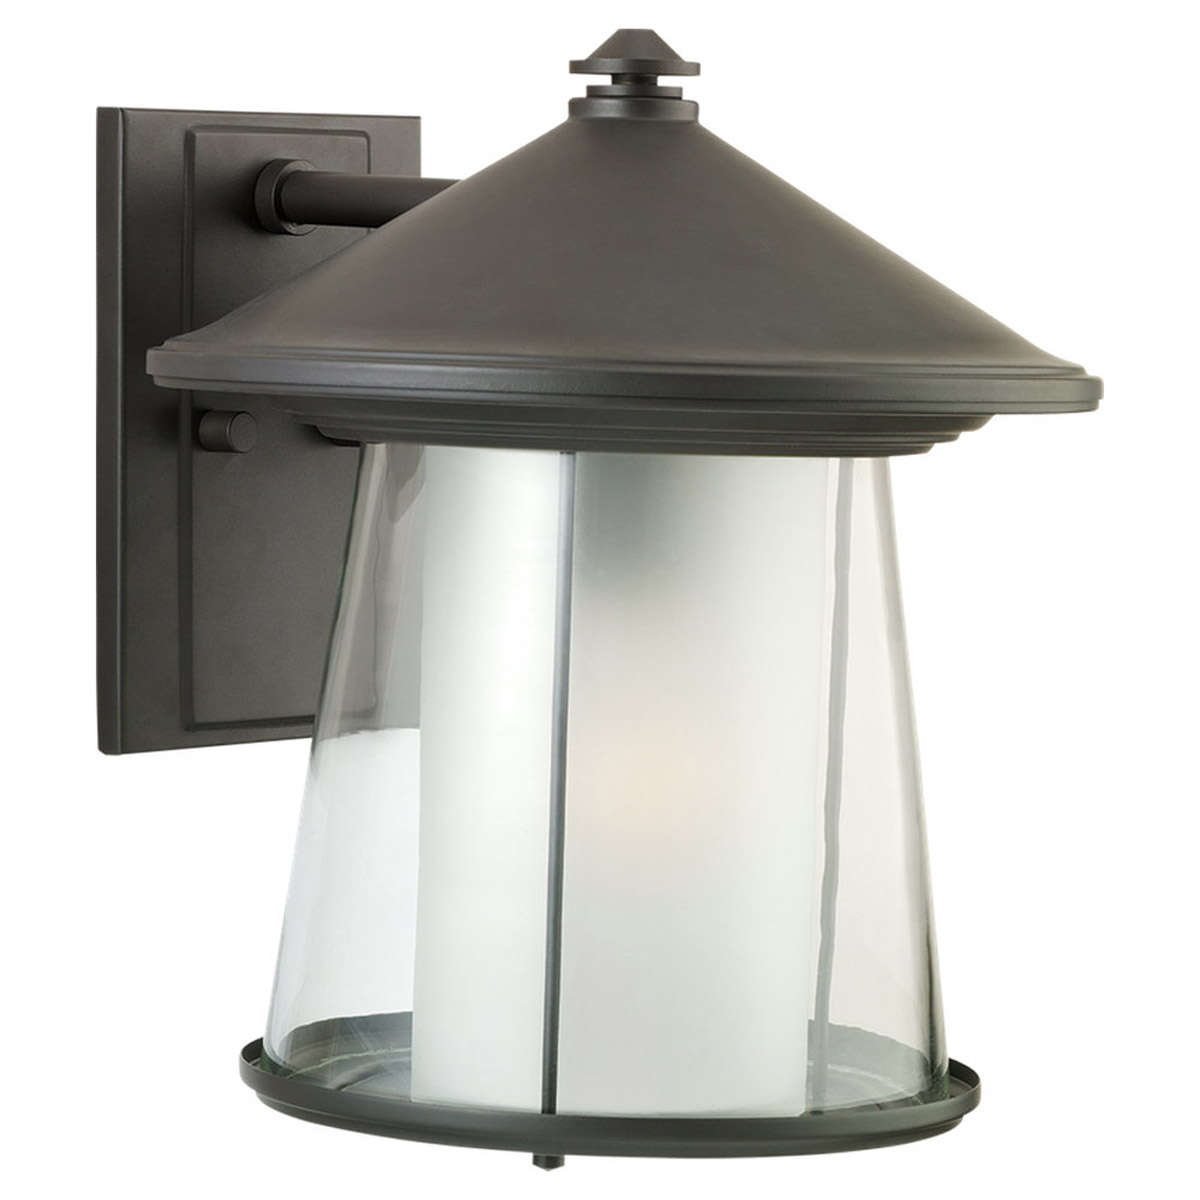 Sea Gull Lighting Strathmore 1 Light Outdoor Wall Lantern in Cottage Bronze 88321-833 photo